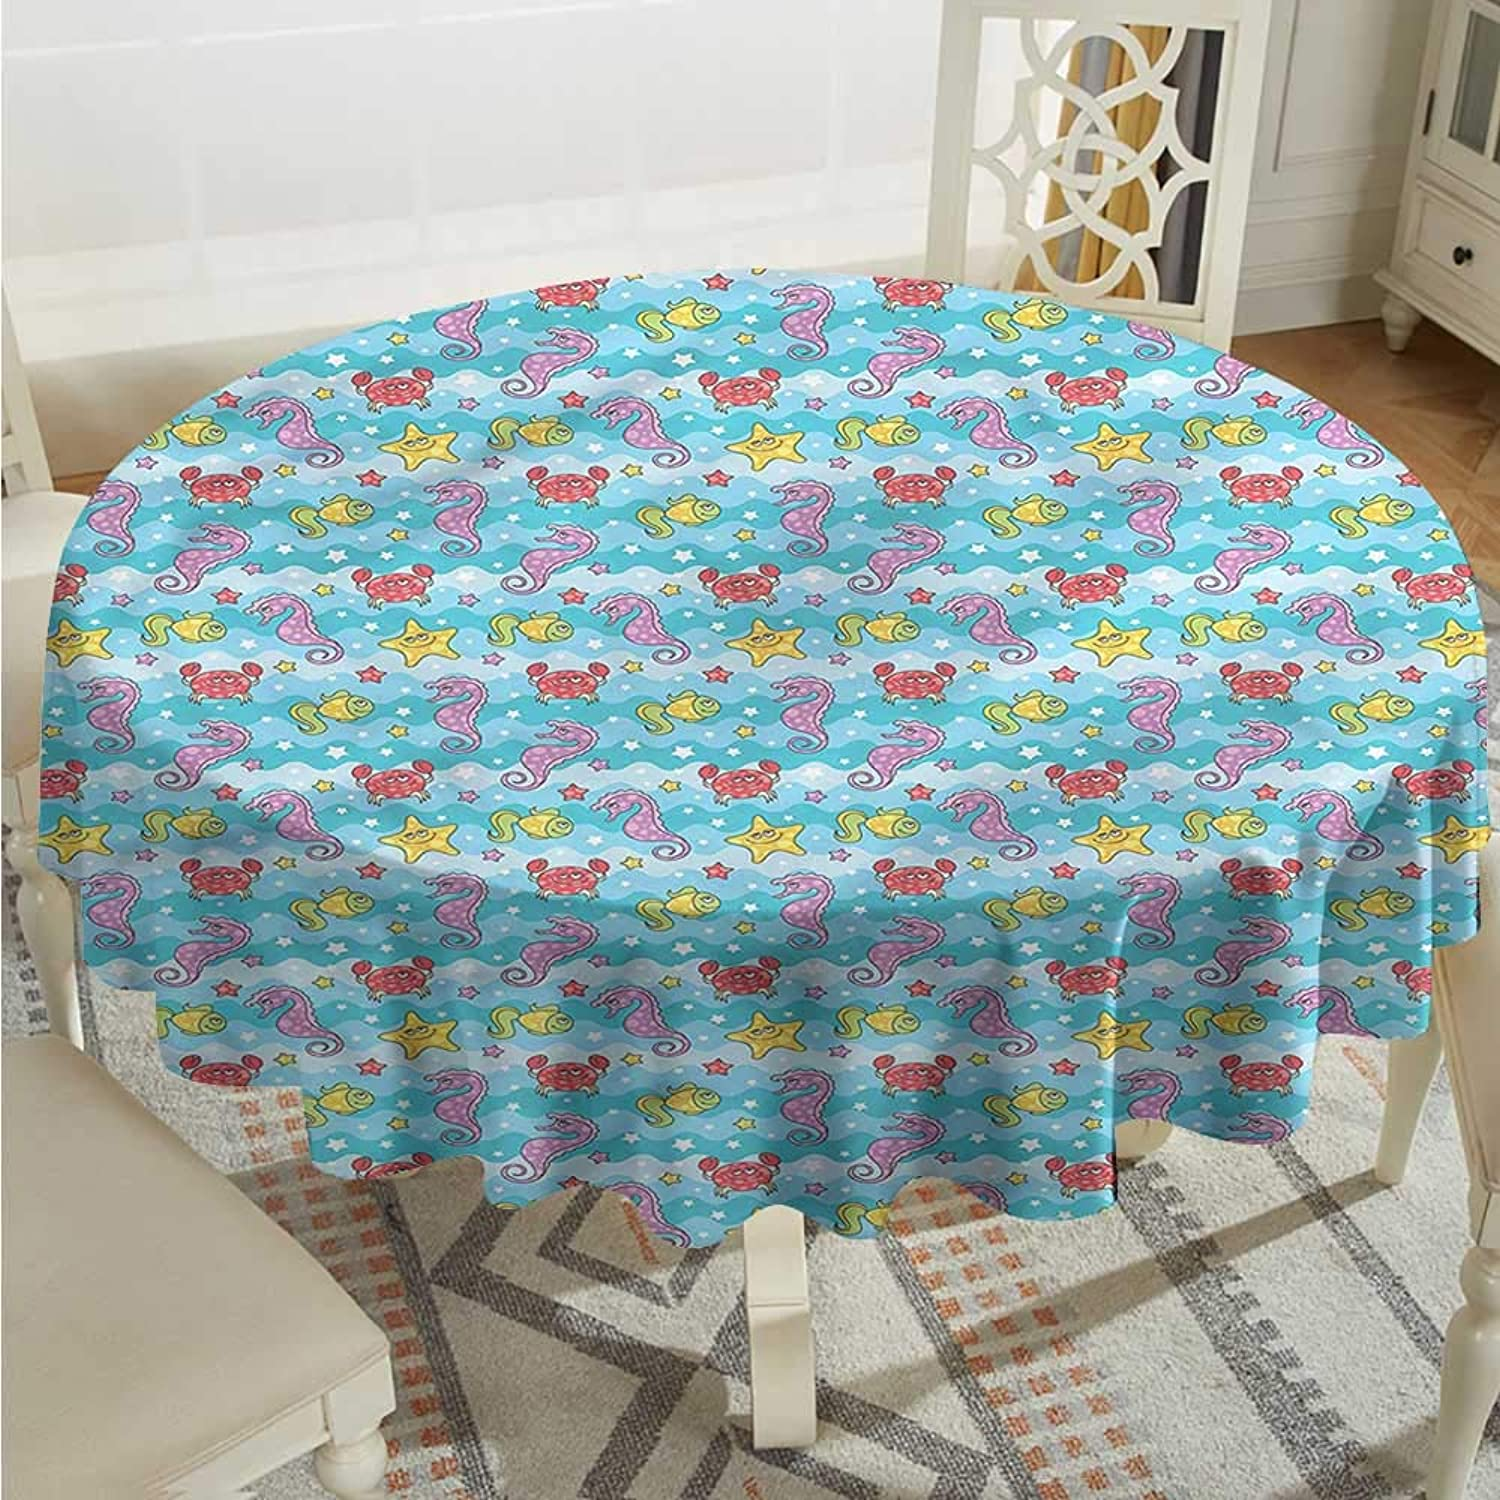 Tim1Beve Baby Resistant Table Cover Marine Inspired Sea Fauna It's Good to be Home Gorgeous High End Quality D60 INCH